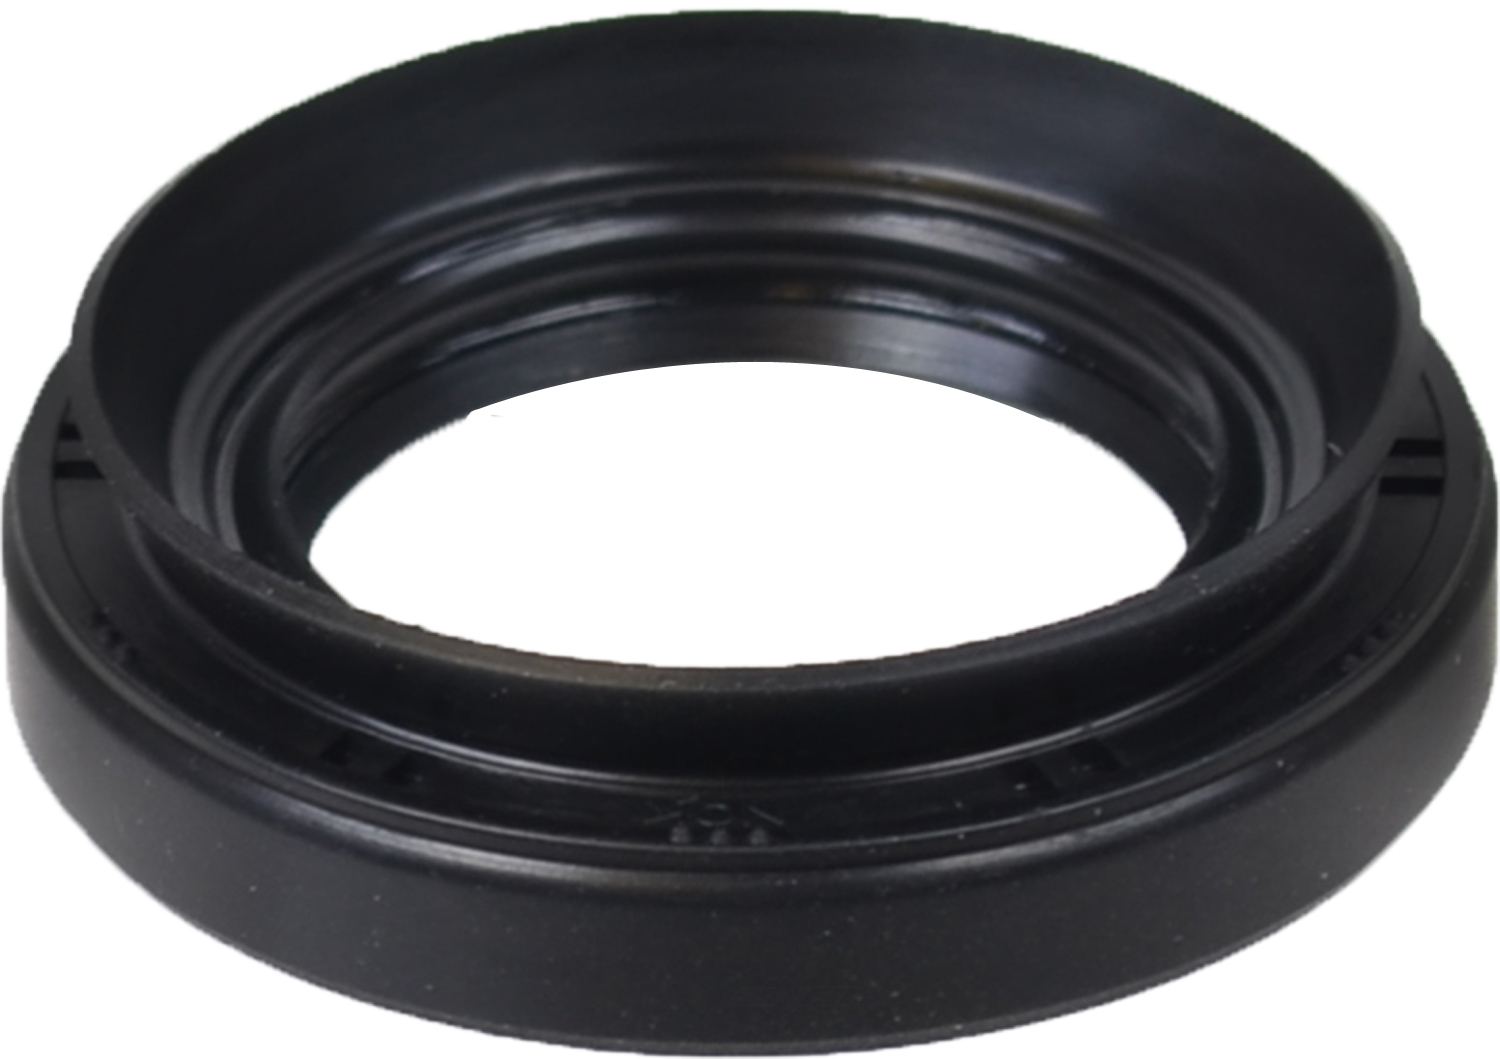 SKF (CHICAGO RAWHIDE) - Manual Trans Output Shaft Seal - SKF 14006